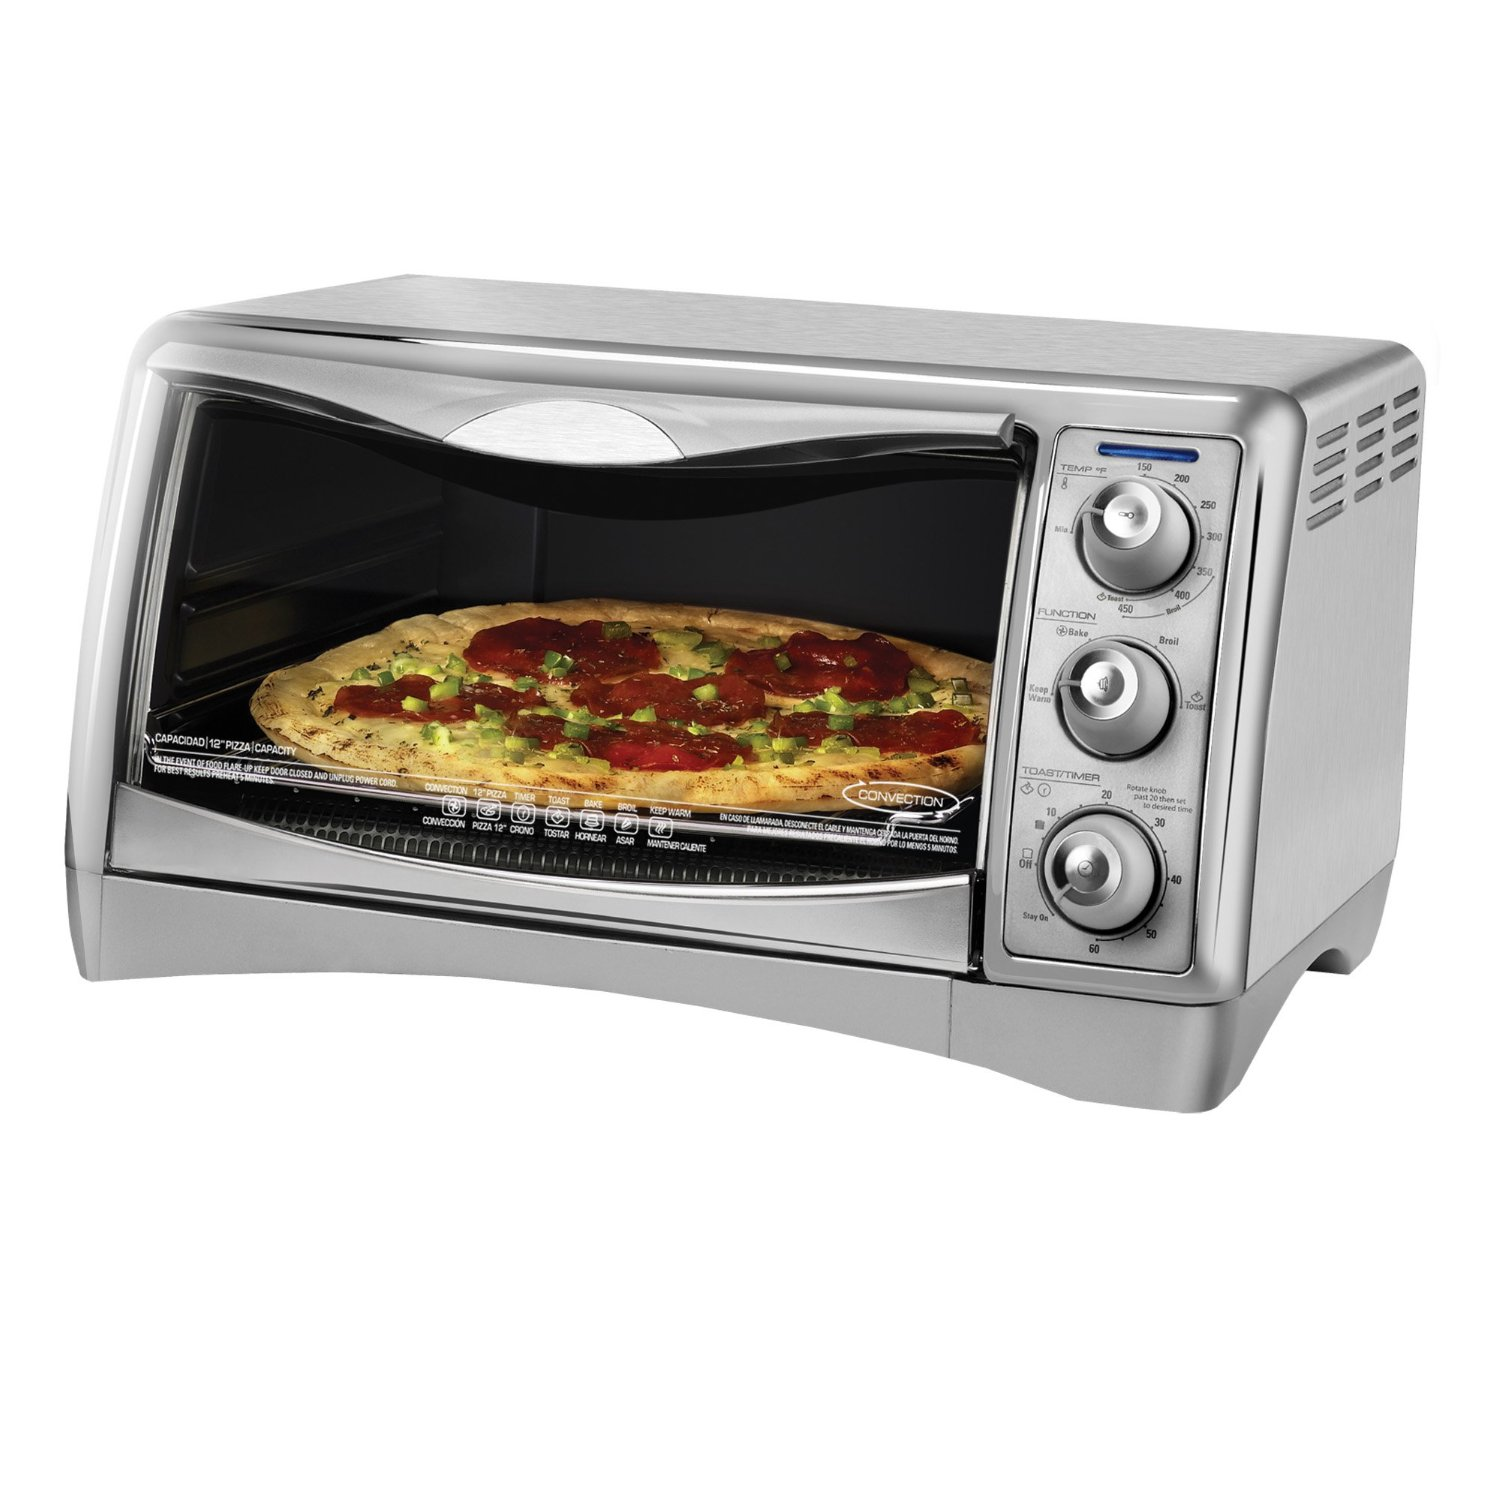 Best Countertop Convection Oven Toaster : ... packages: CTO4500S Counter Top Convection Oven by Black Decker